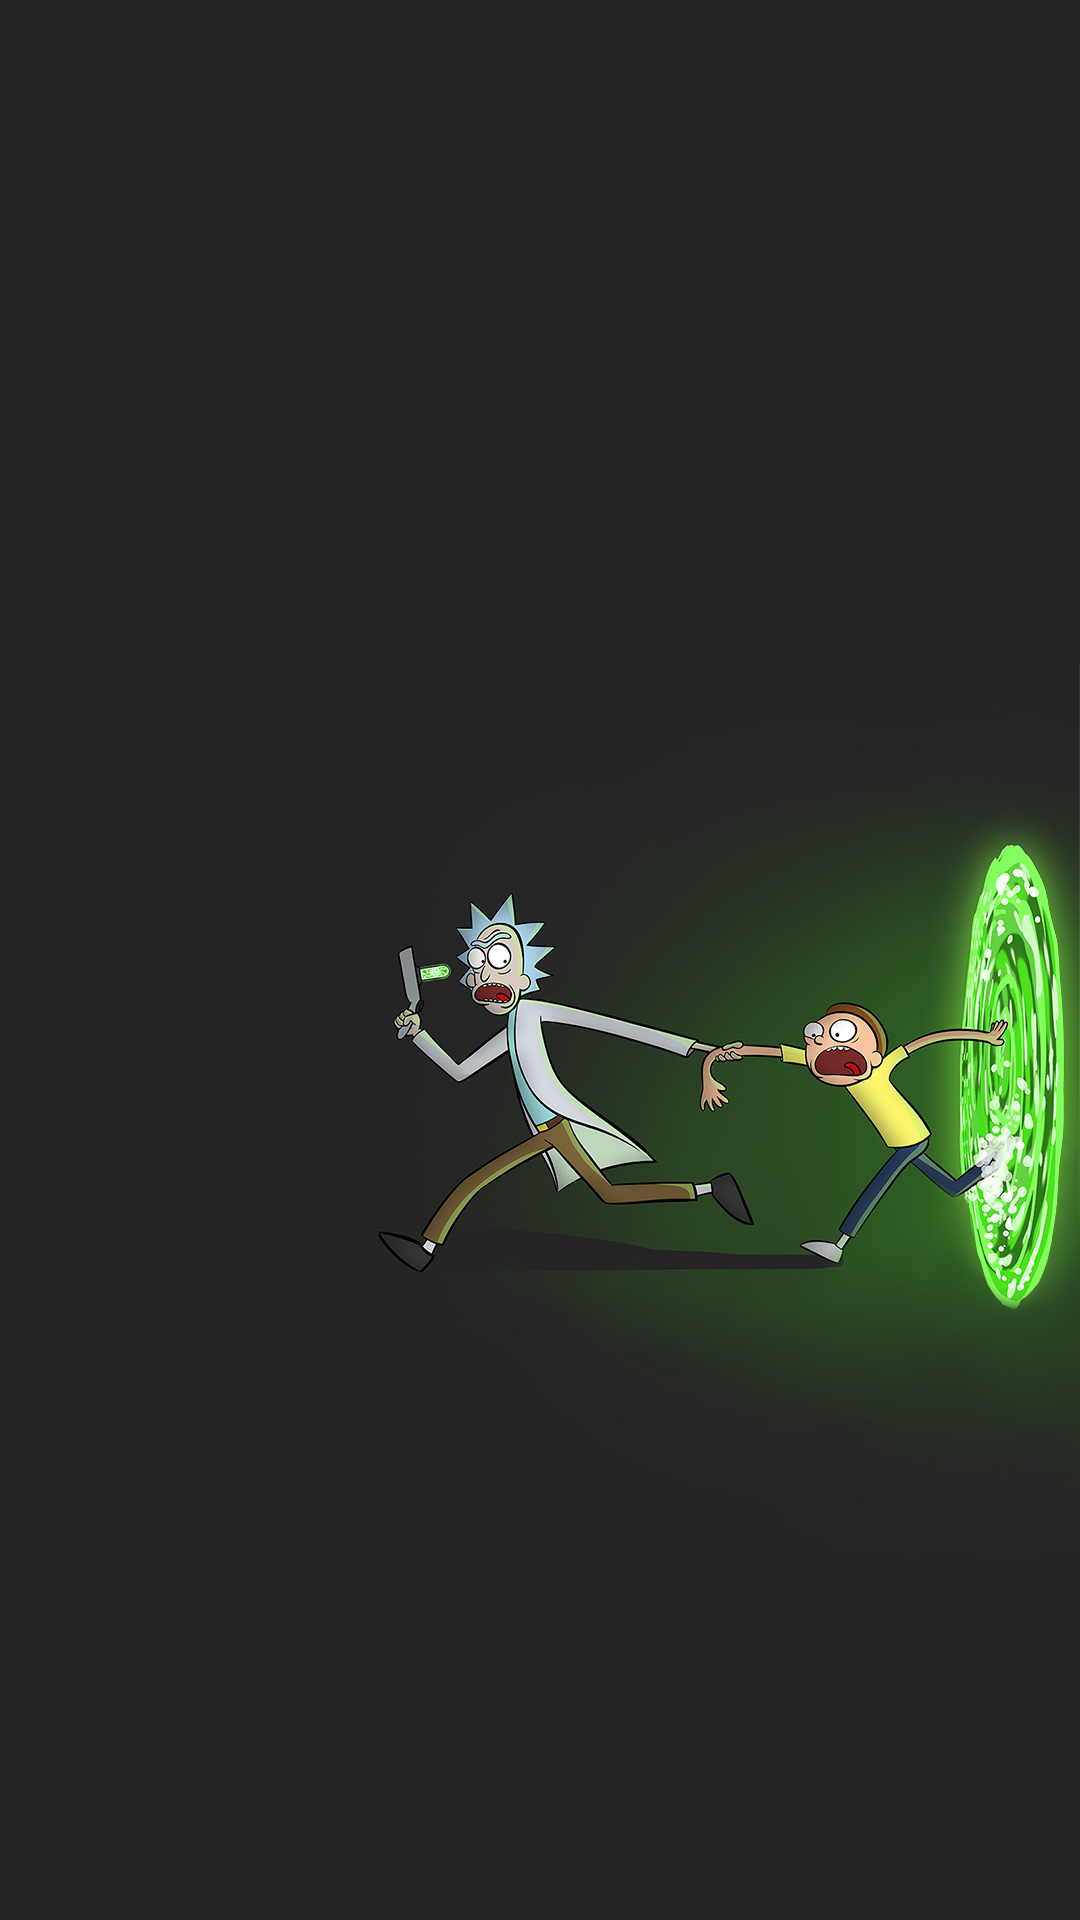 Rick and Morty Wallpaper for iPhone X  8  7  6   Free Download on     iPhone wallpaper rick and morty1 Rick and Morty